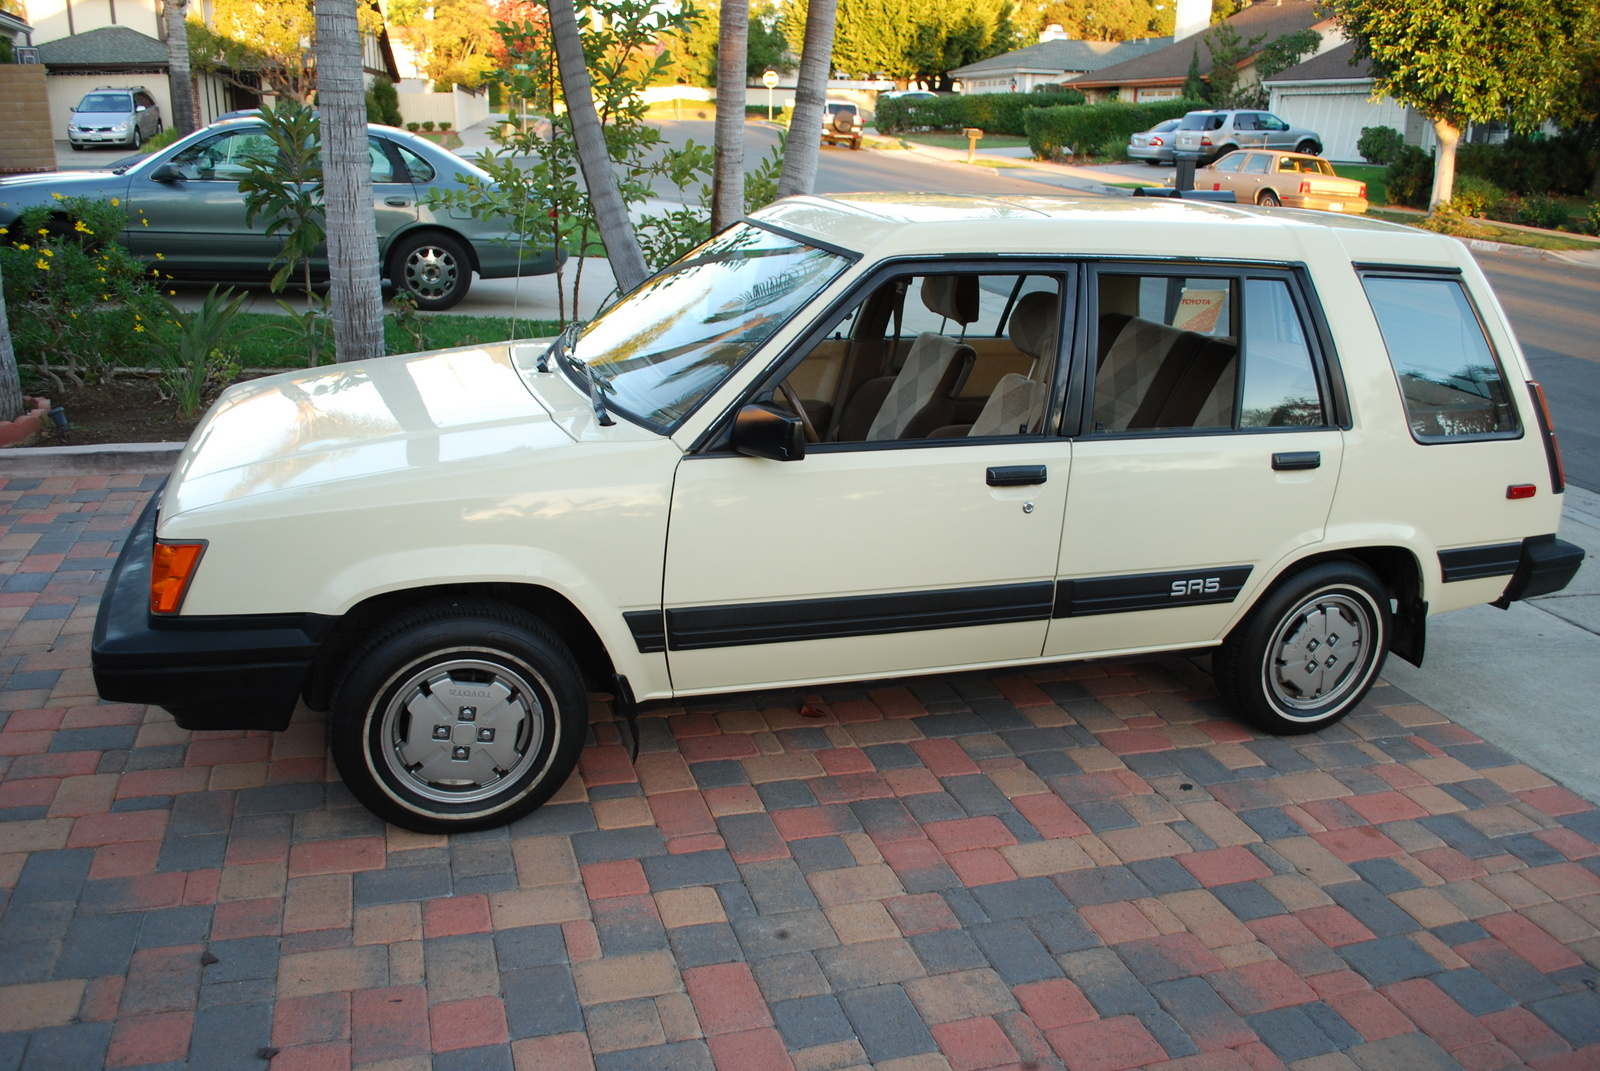 1985 Toyota Tercel 4 Dr SR5 AWD Wagon, Side view - 1985 Toyota Tercel 4WD SR5 Wagon, exterior